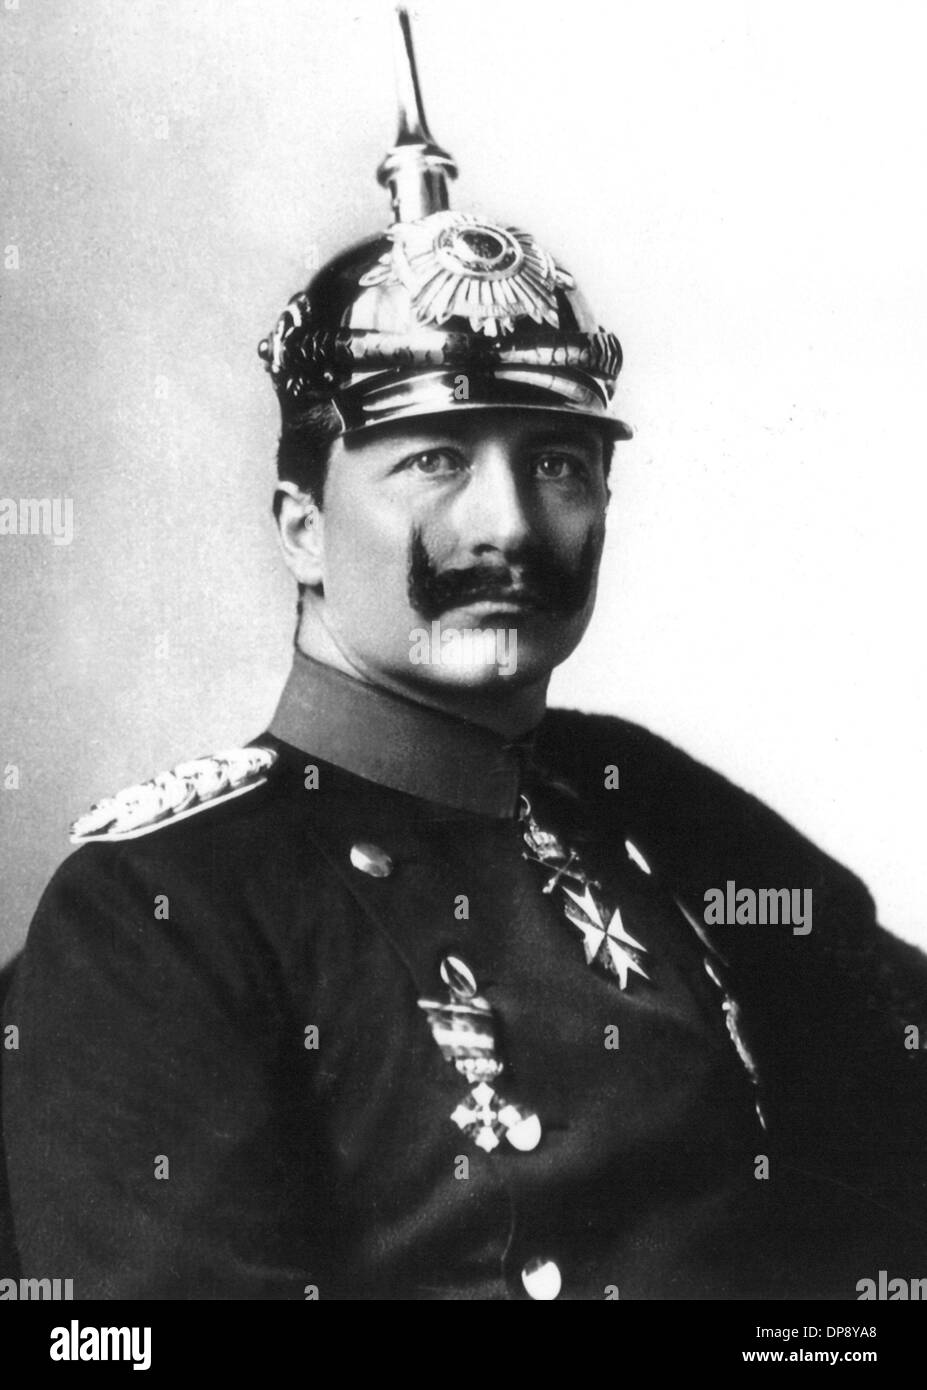 Emperor Wilhelm II. in 1917, who was born on the 27th of January in 1859 and died on the 4th of June in 1941 in Stock Photo